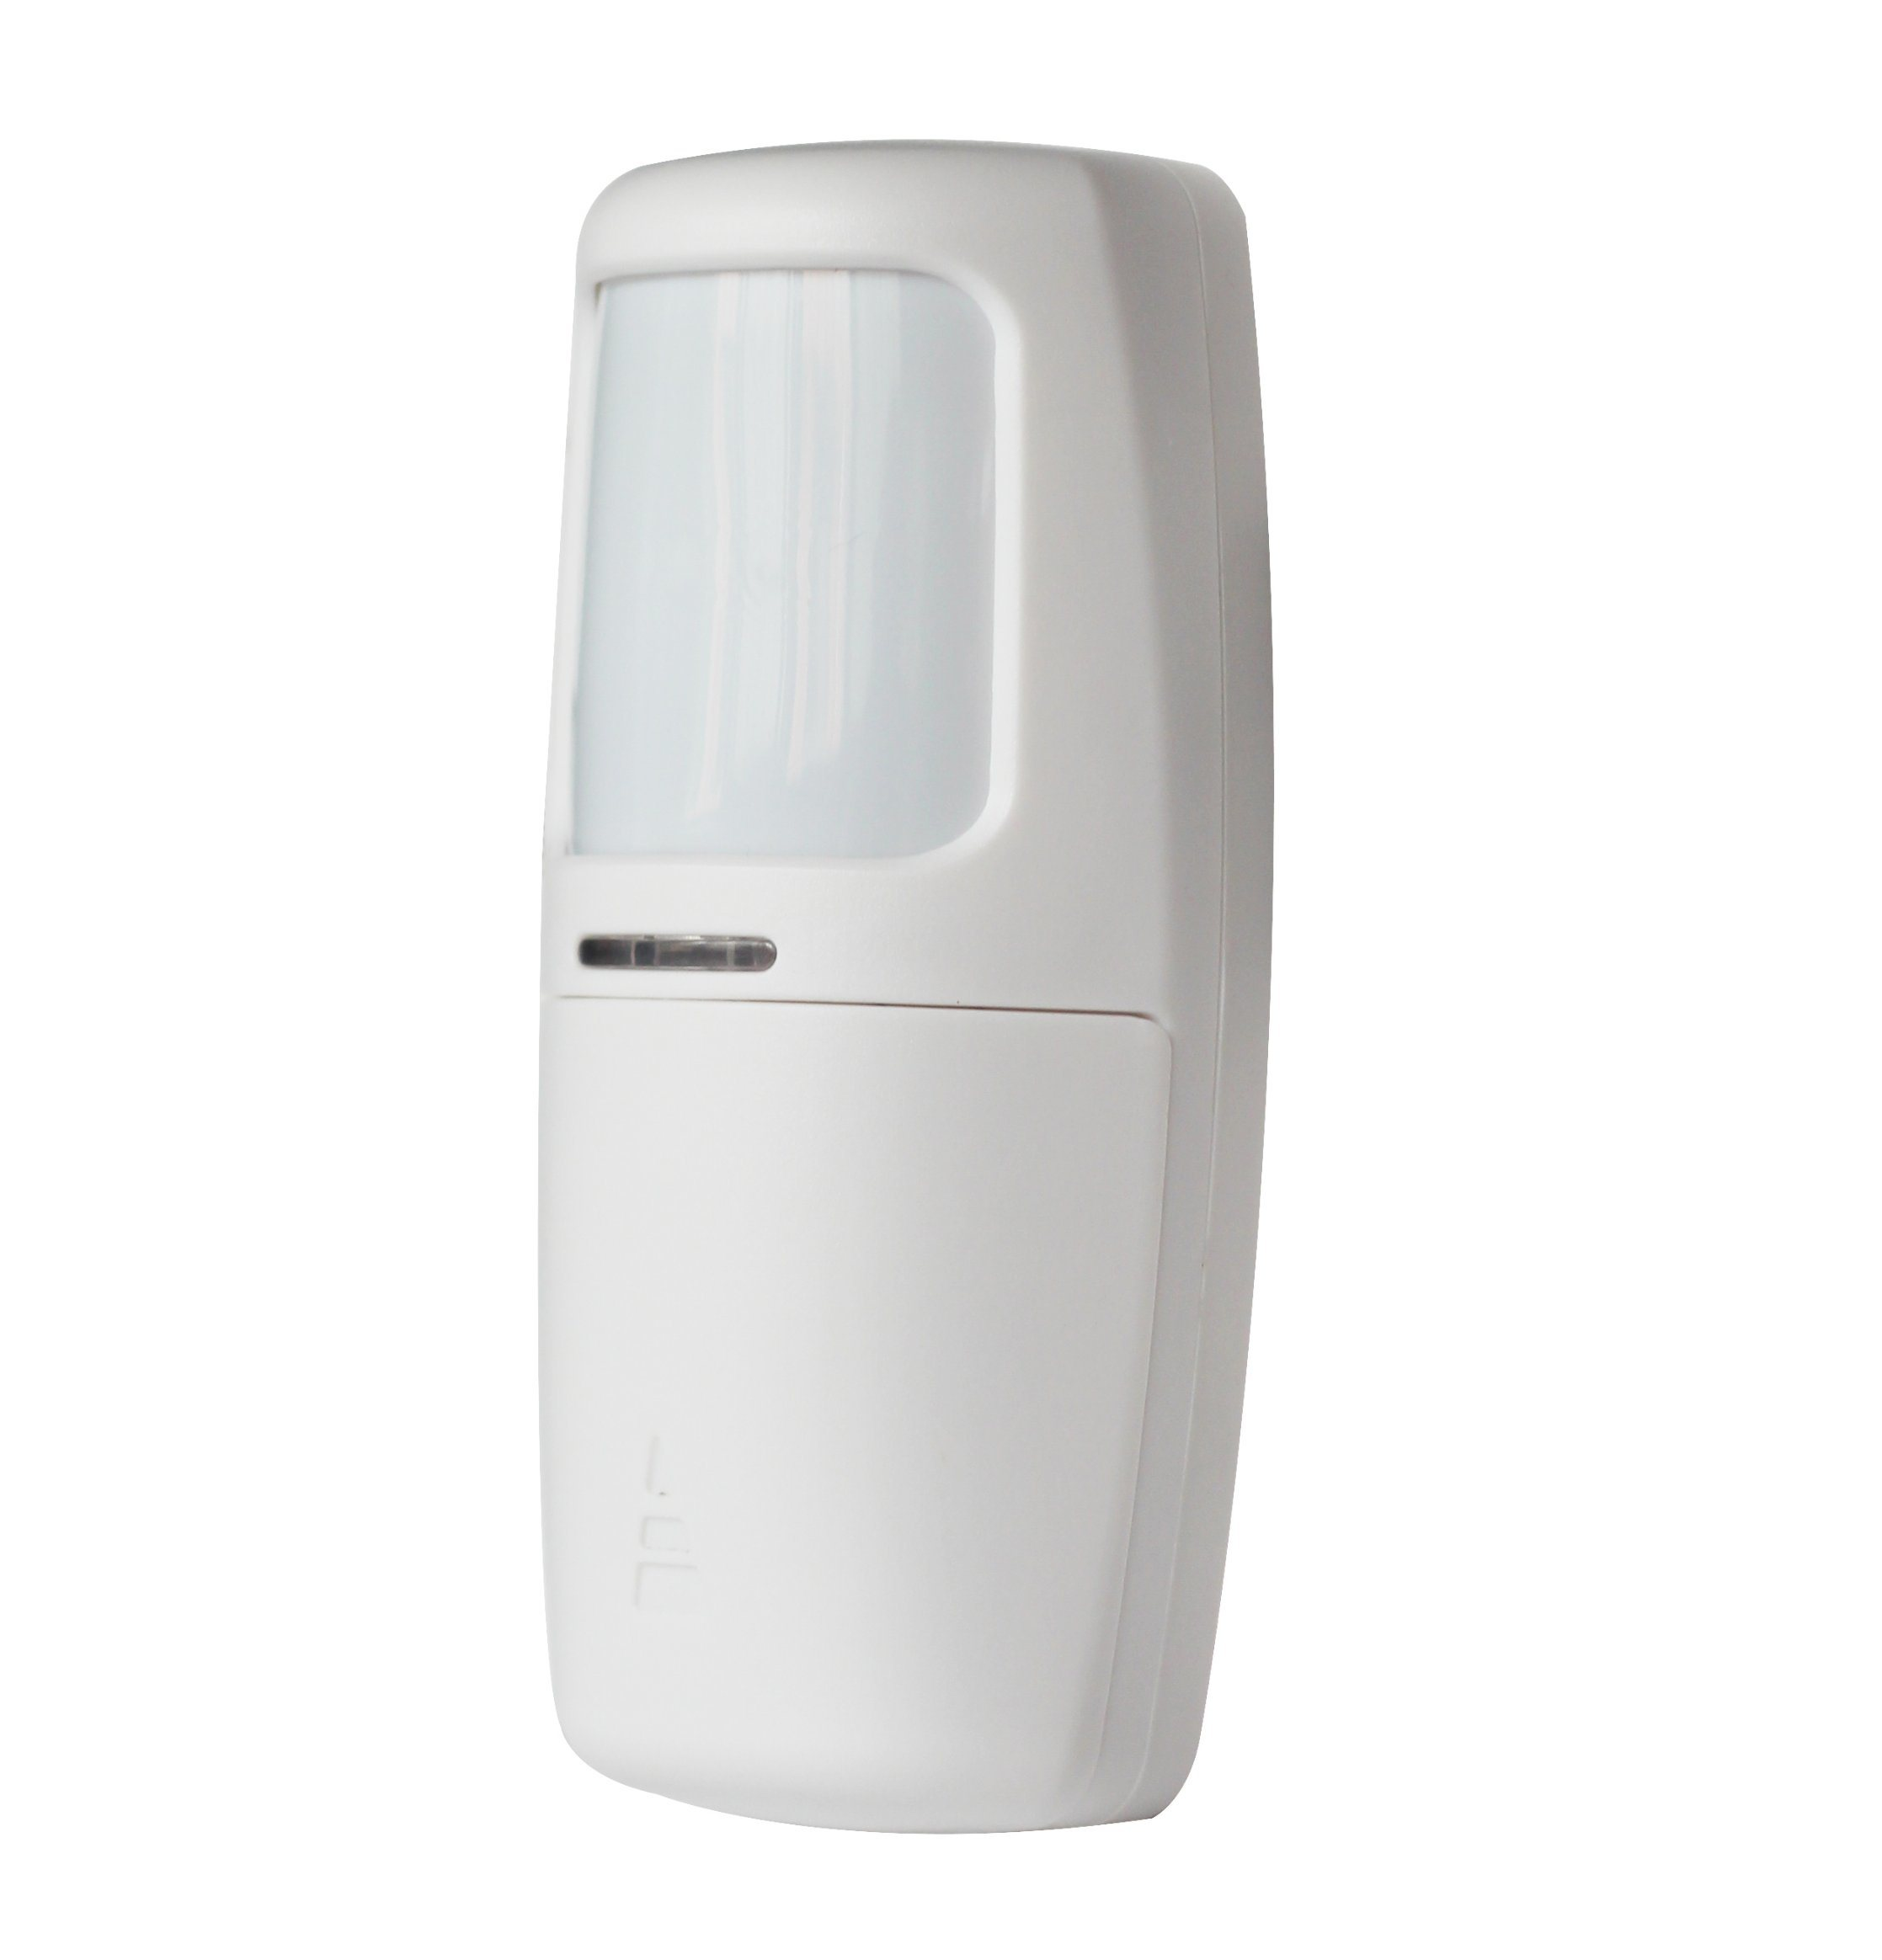 China Alarm Security System Sensor Wireless Pir With Low Based Battery Remind Function Motion